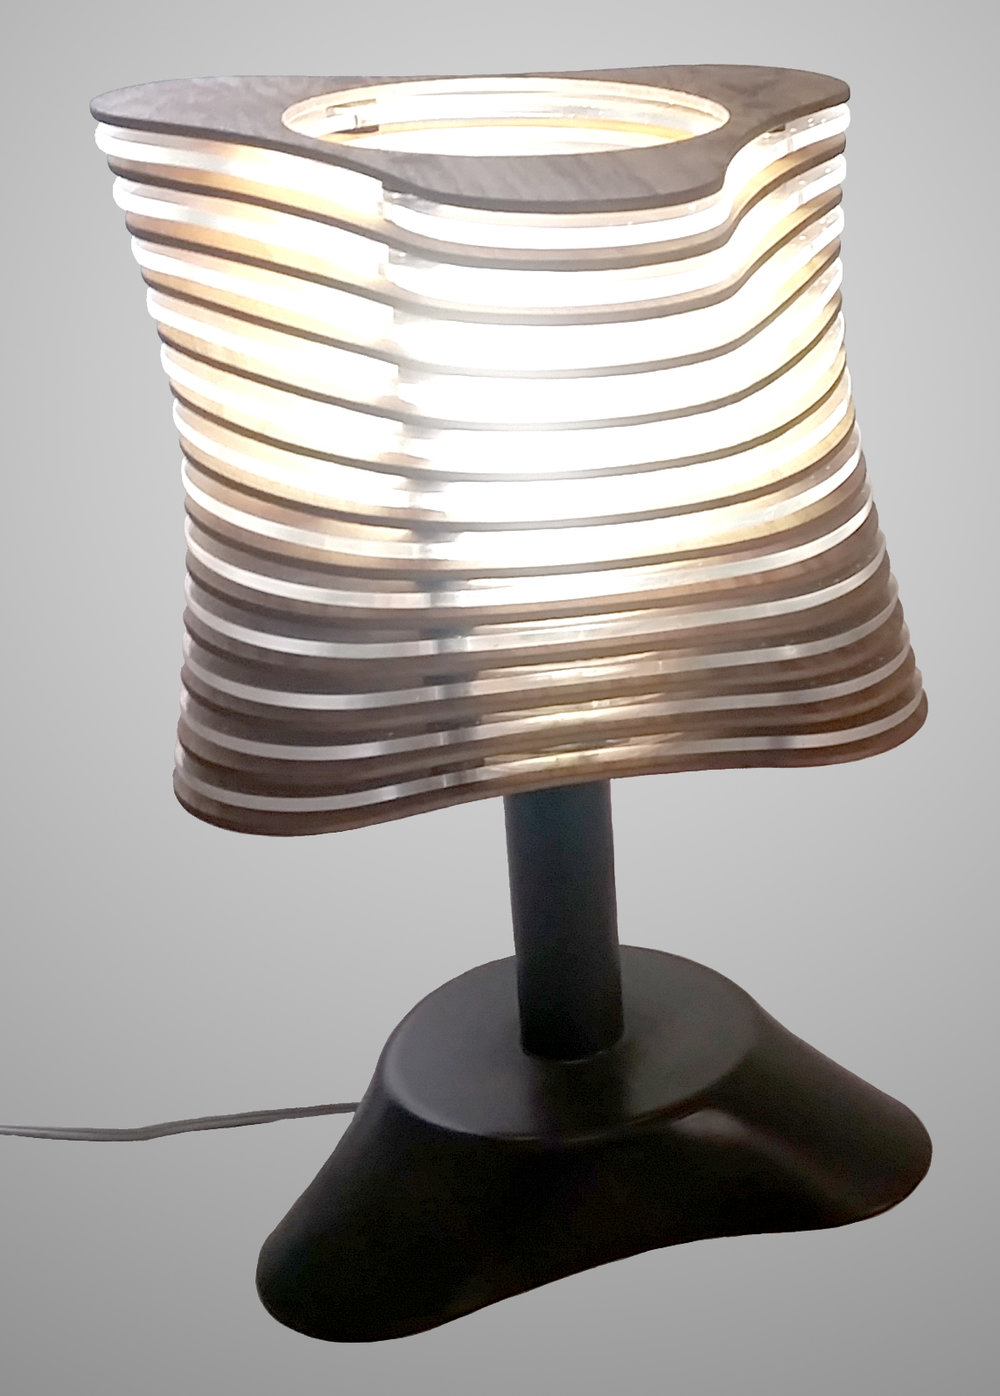 The Ternion Lamp